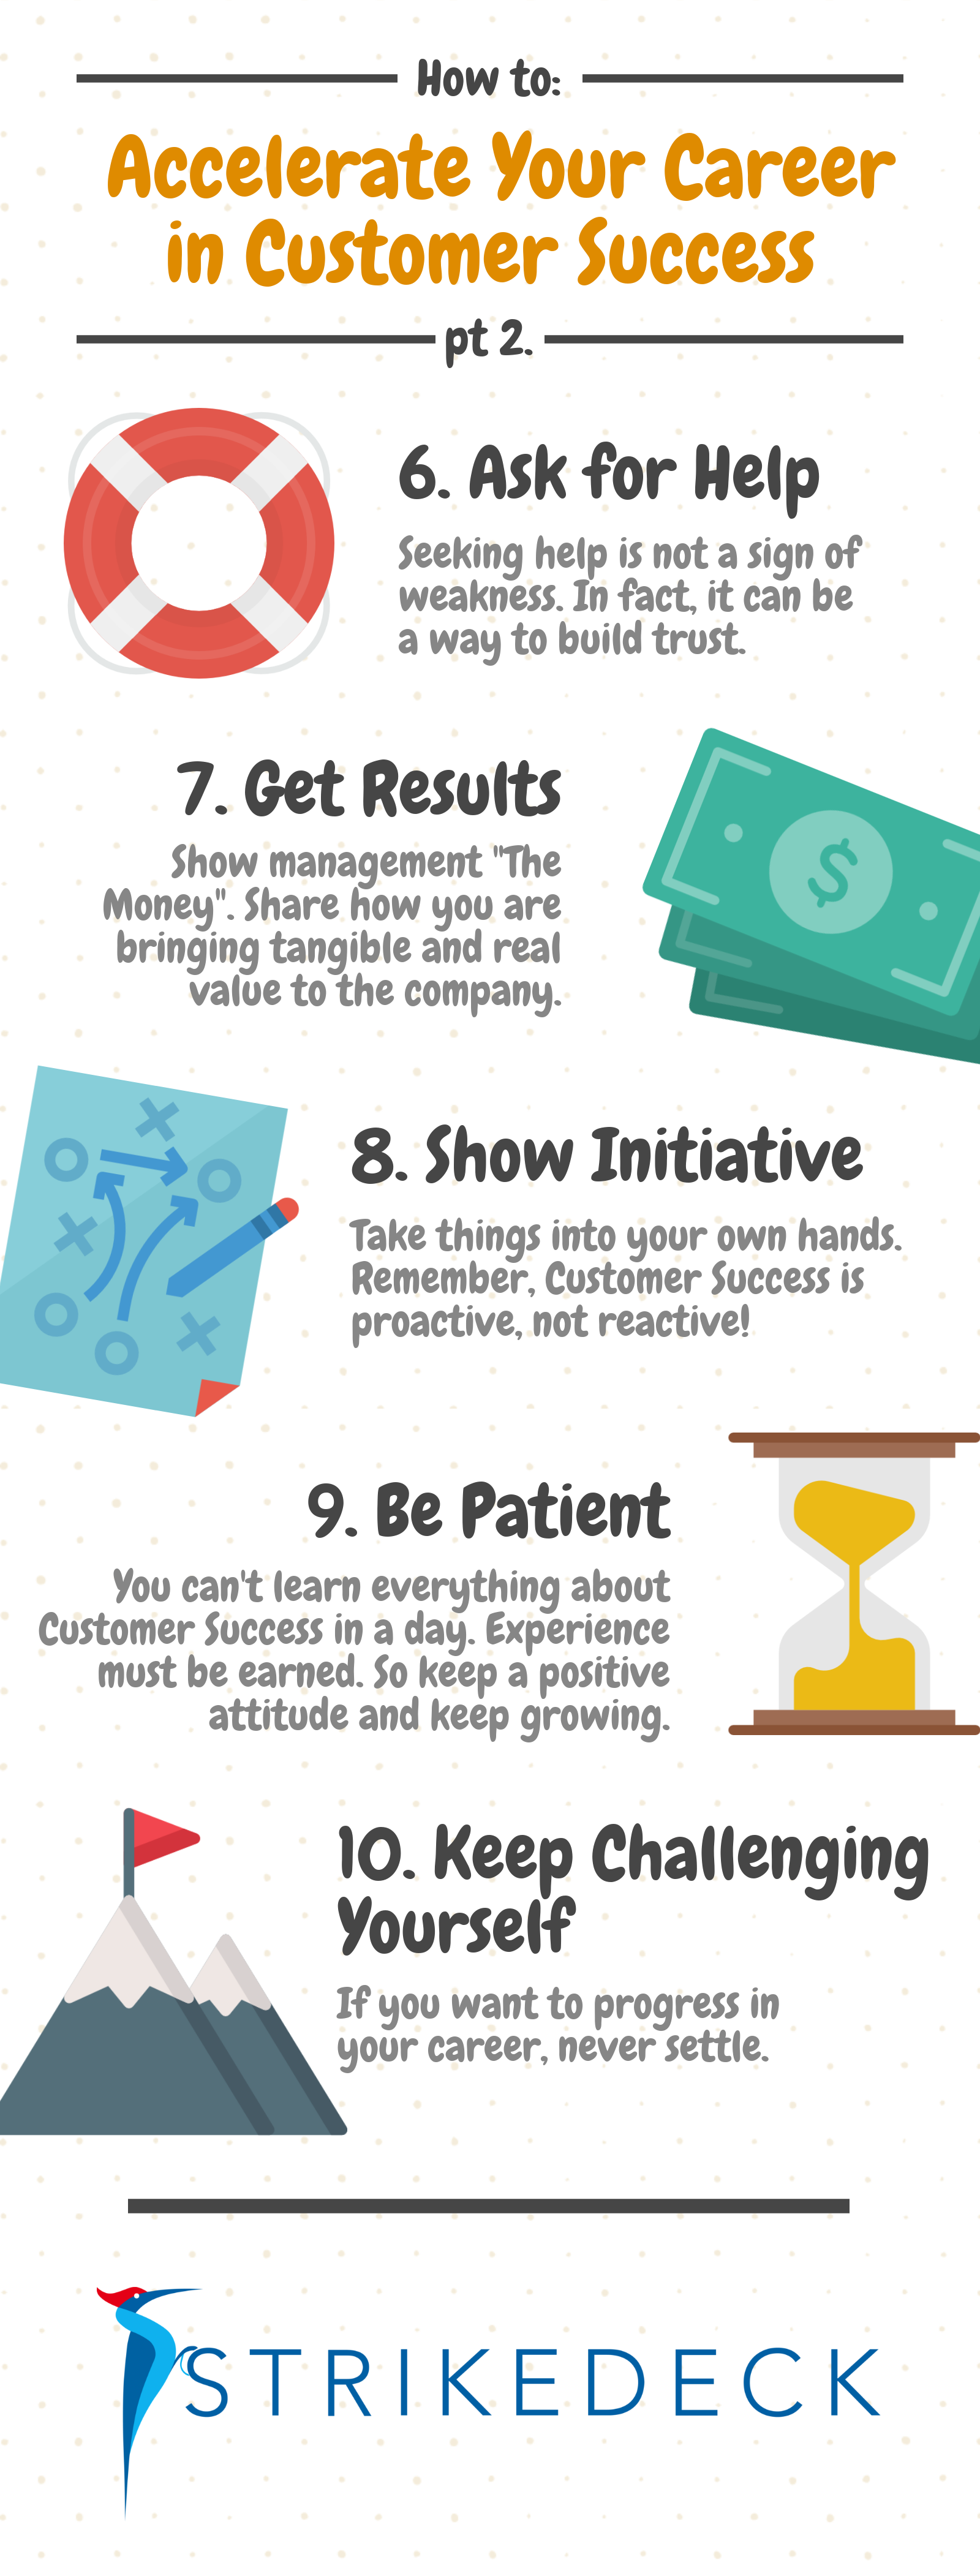 How to enhancing your skills in Customer Success?